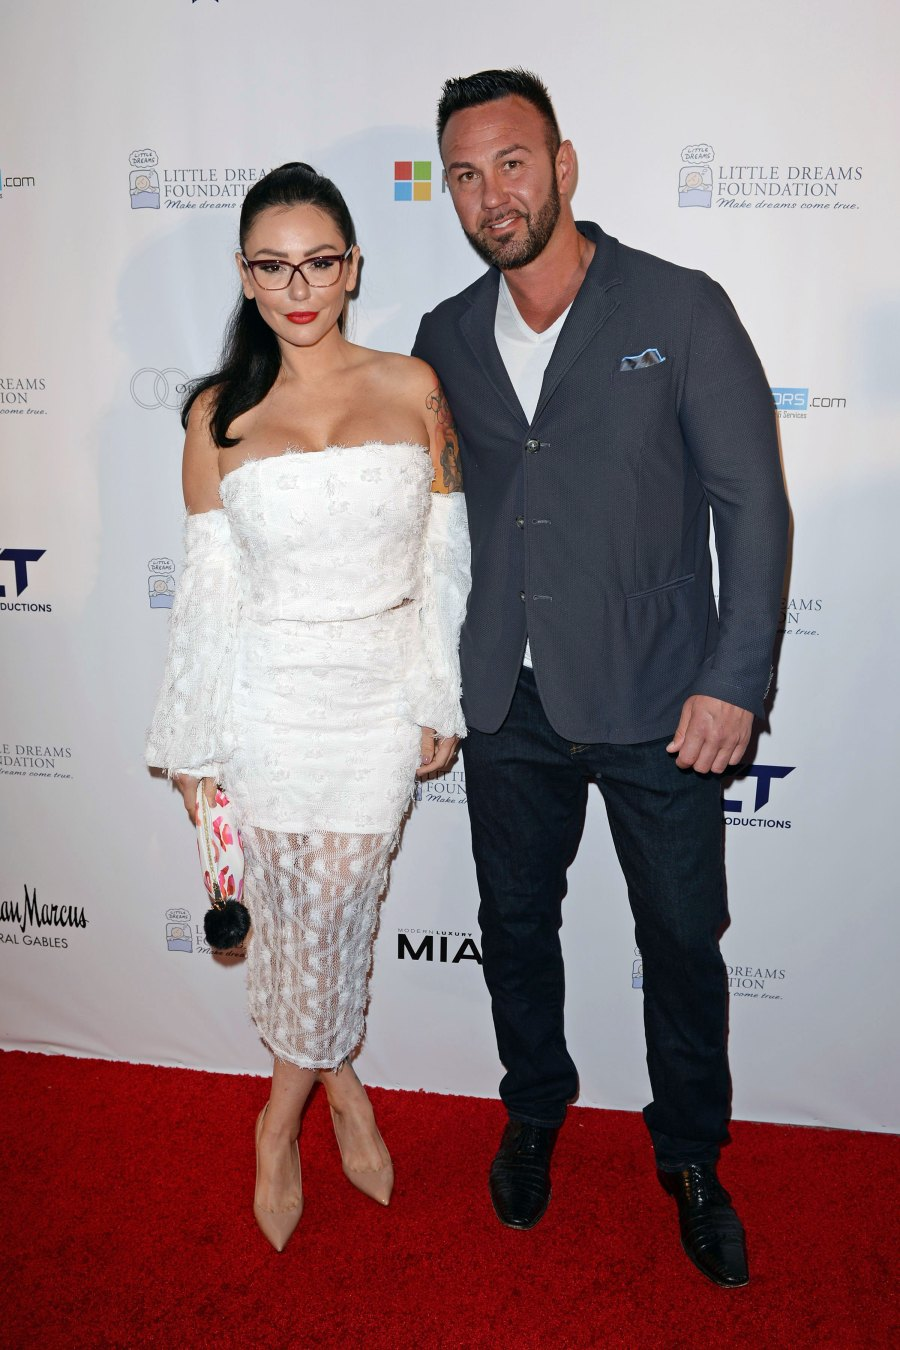 Roger Mathews Reveals He Is 'Casually Dating' After JWoww Divorce, Wishes Her 'All the Best' With Boyfriend Zack Carpinello